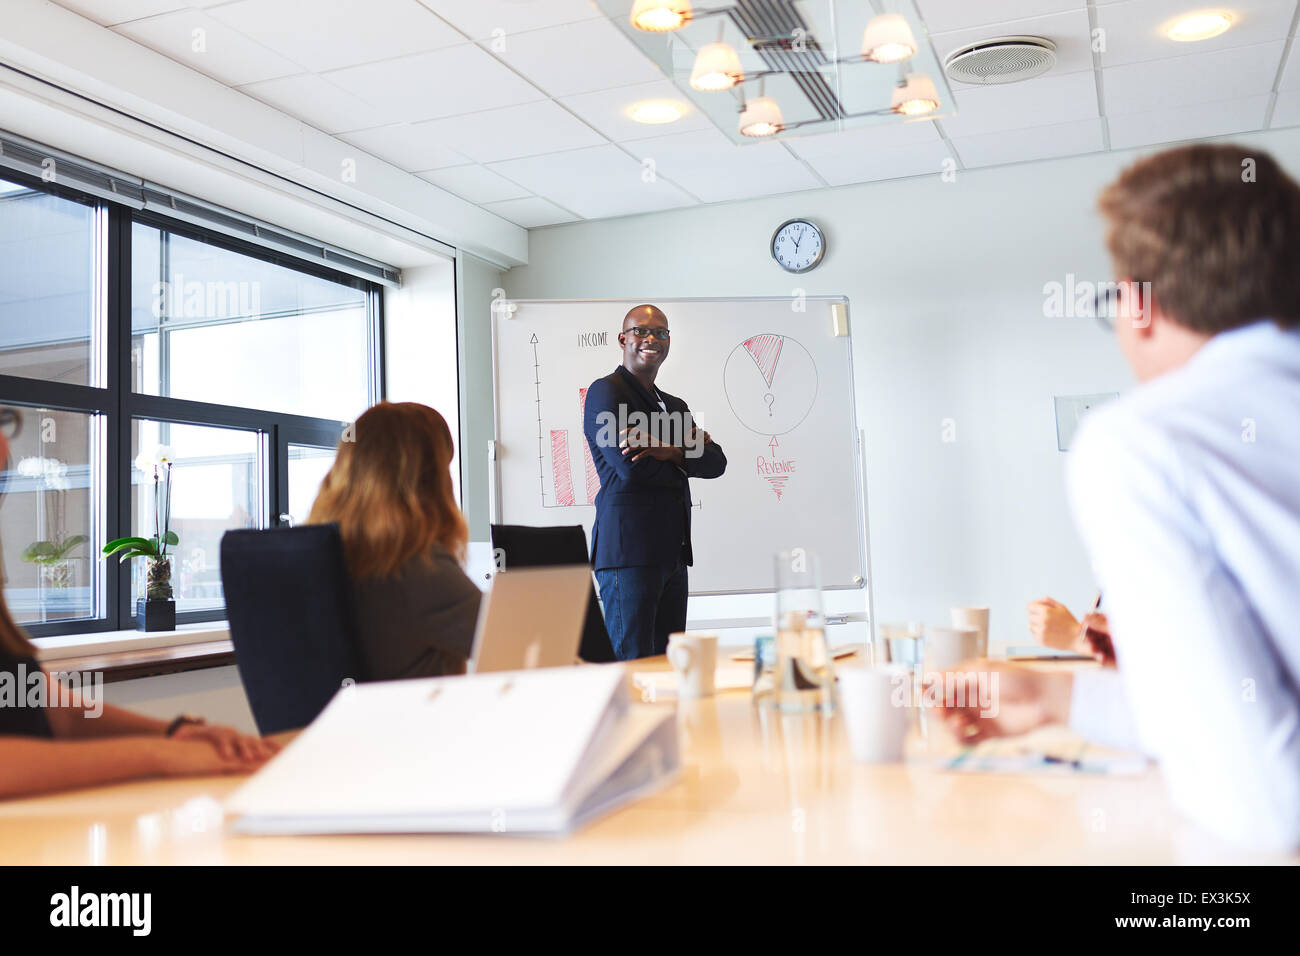 Black male executive smiling with arms crossed standing next to whiteboard in meeting - Stock Image